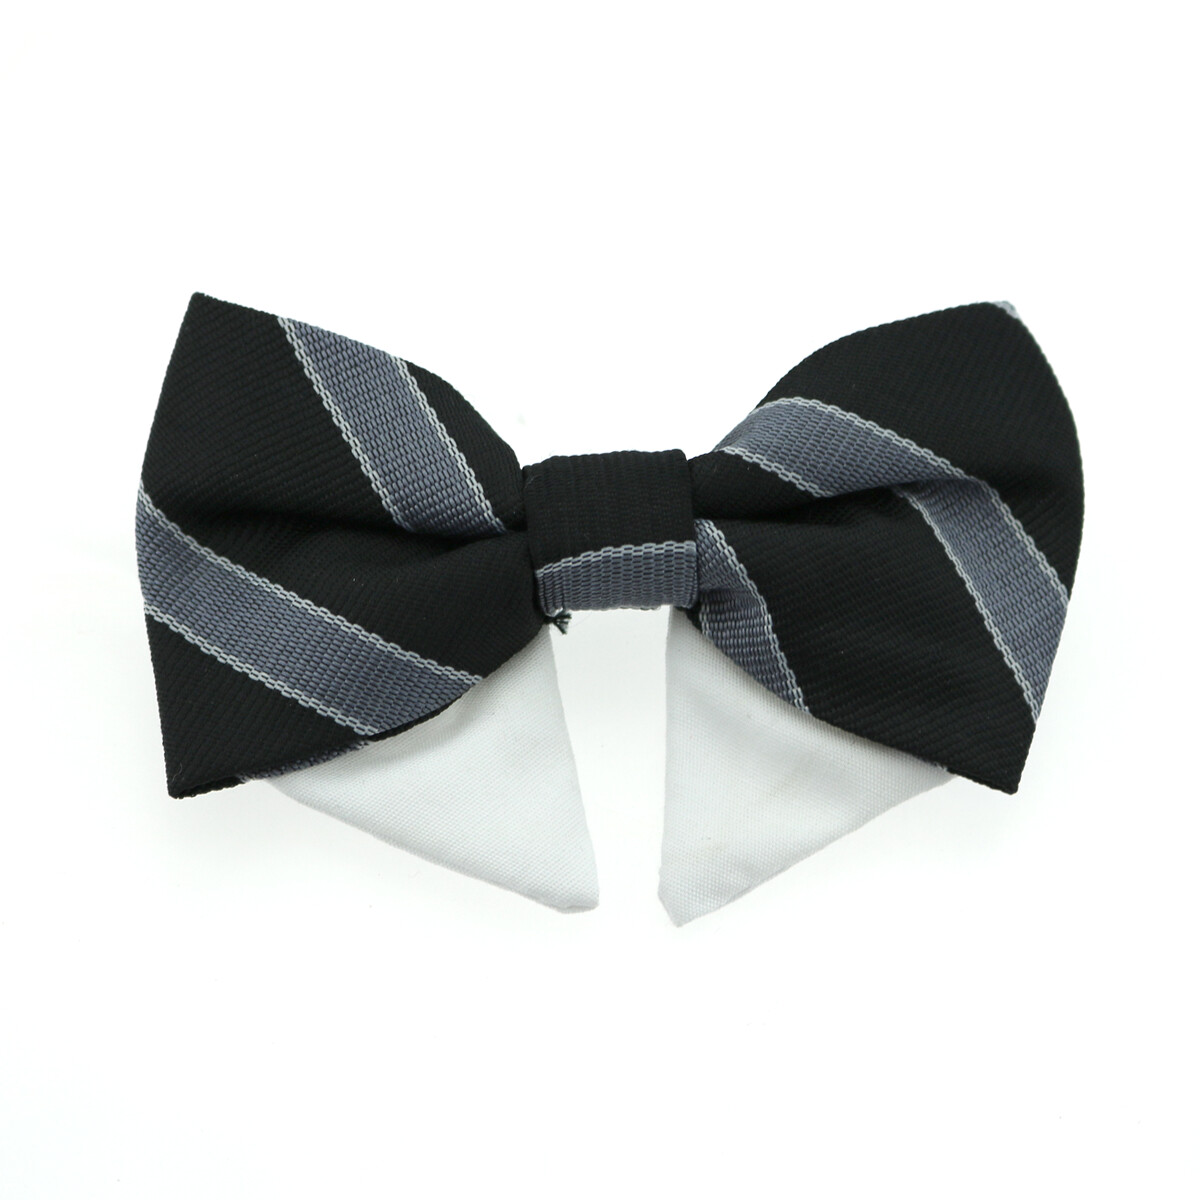 Universal Dog Bow Tie - Black and Silver Stripe